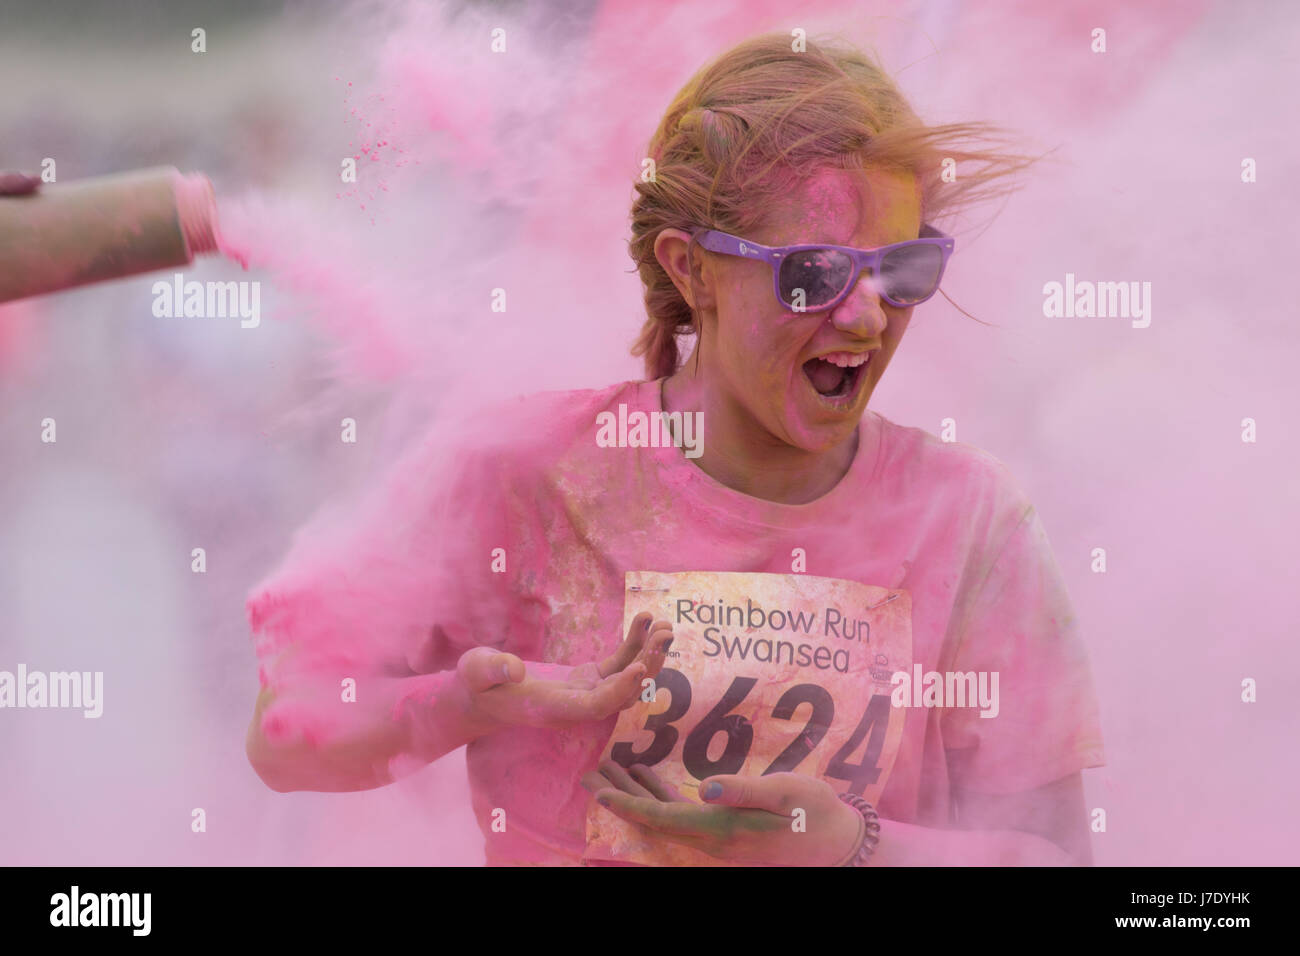 Ty Hafan Rainbow Run charity event at Swansea Beach, Wales, UK, 29th April, 2017. - Stock Image